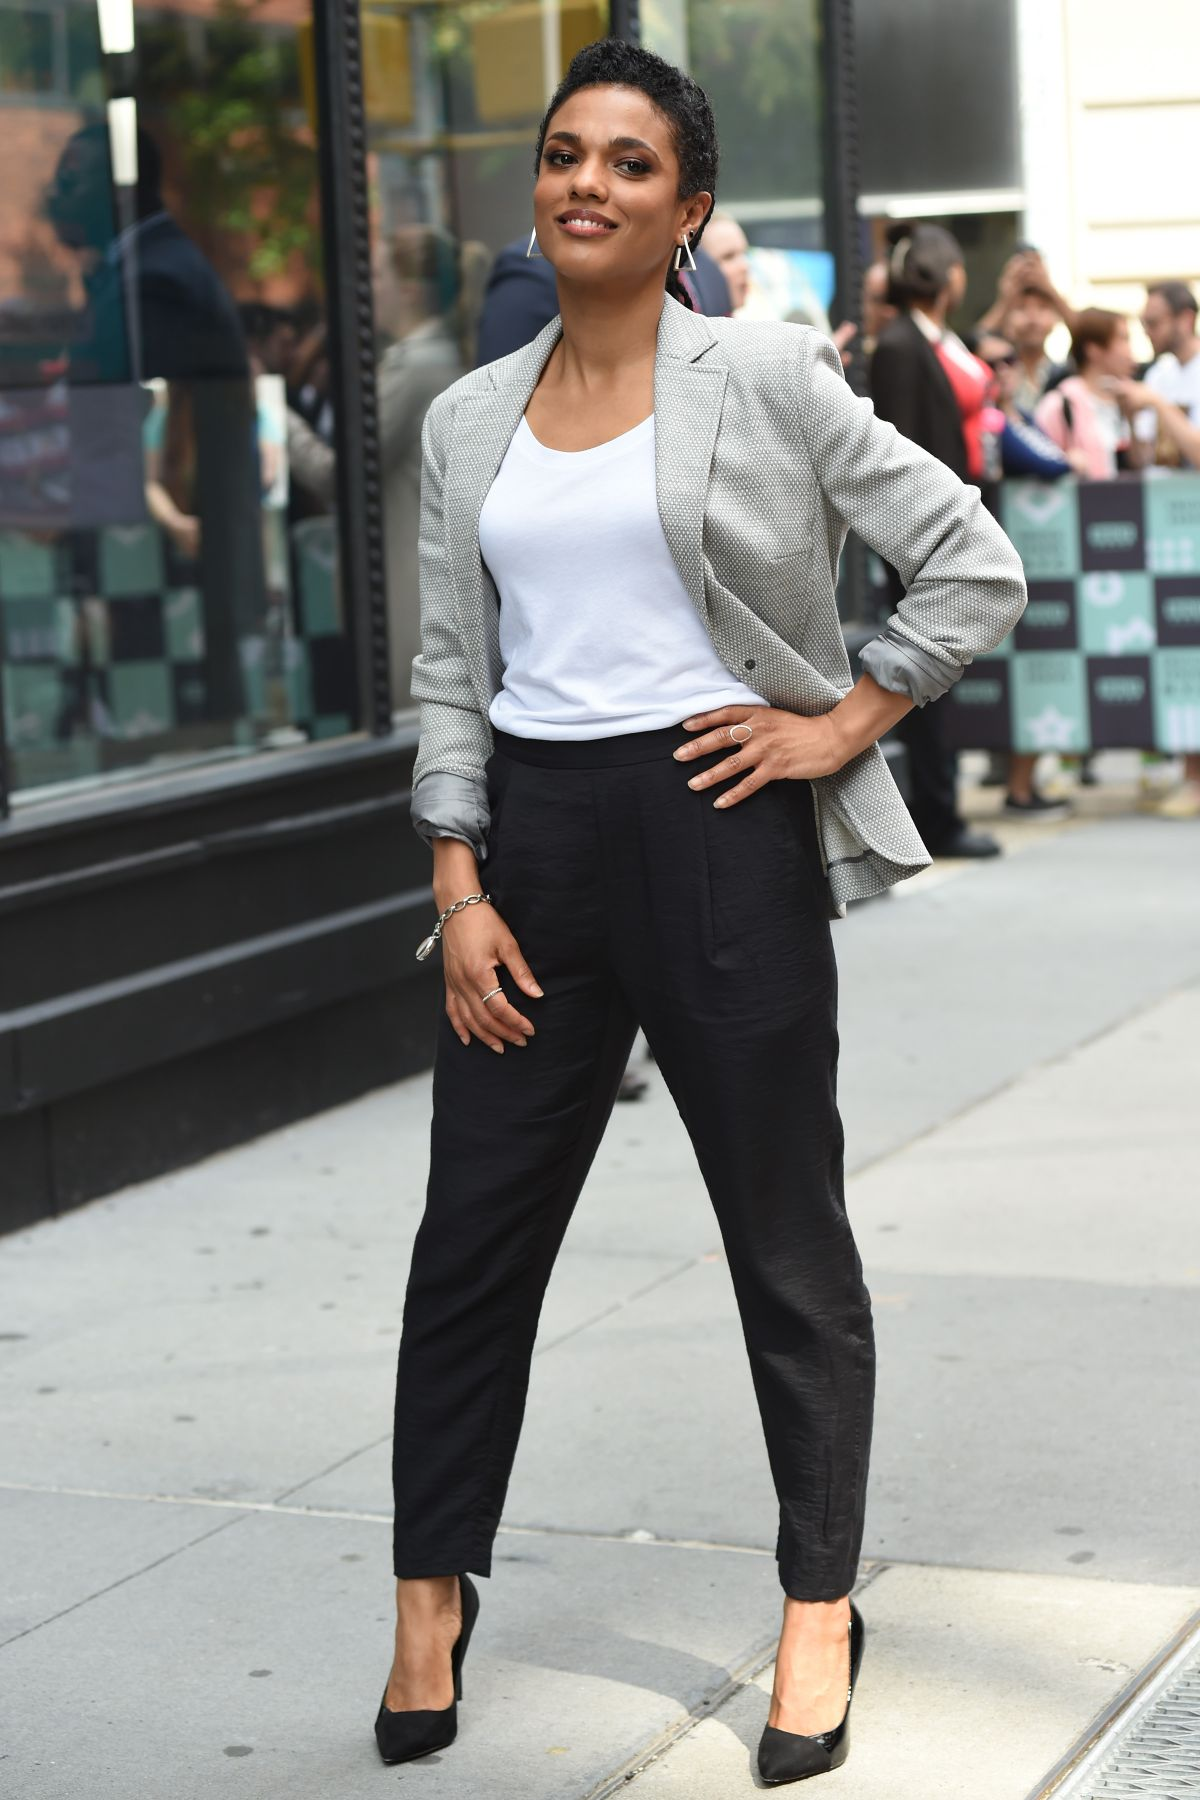 photo Freema Agyeman